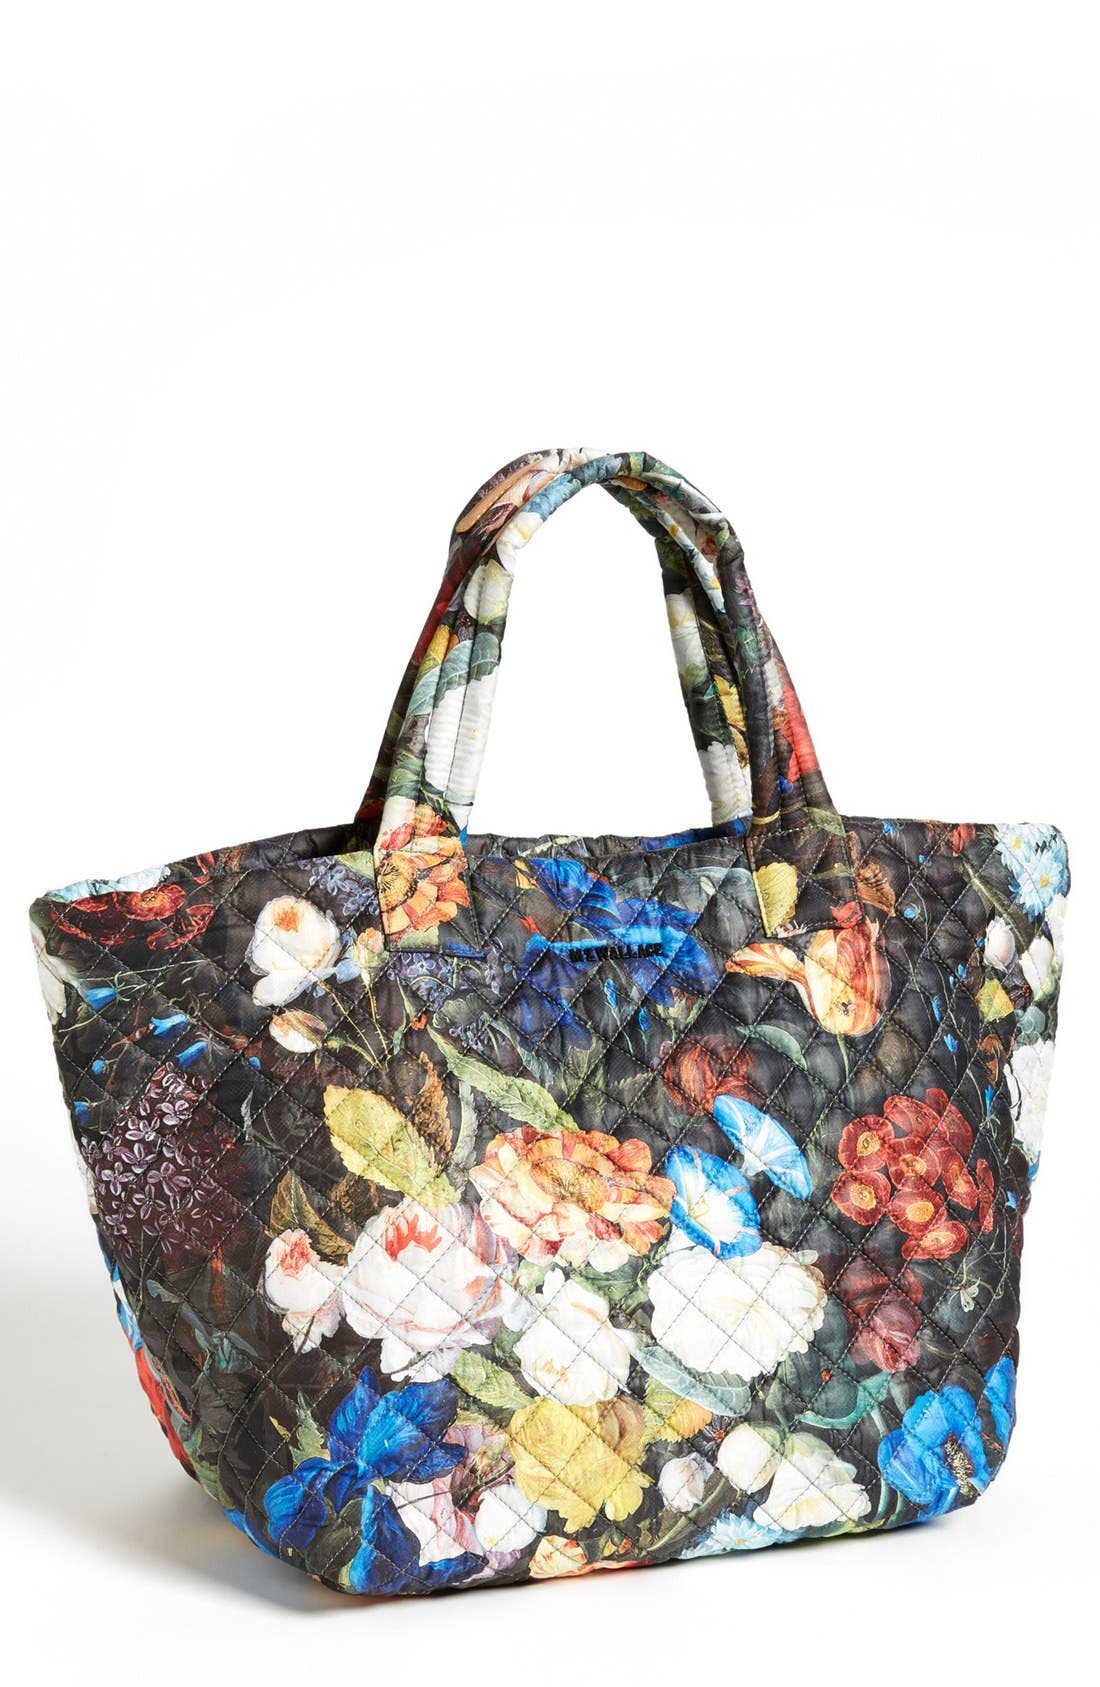 Alternate Image 1 Selected - MZ Wallace 'Medium Floral Oxford - Metro' Quilted Tote (Nordstrom Exclusive)